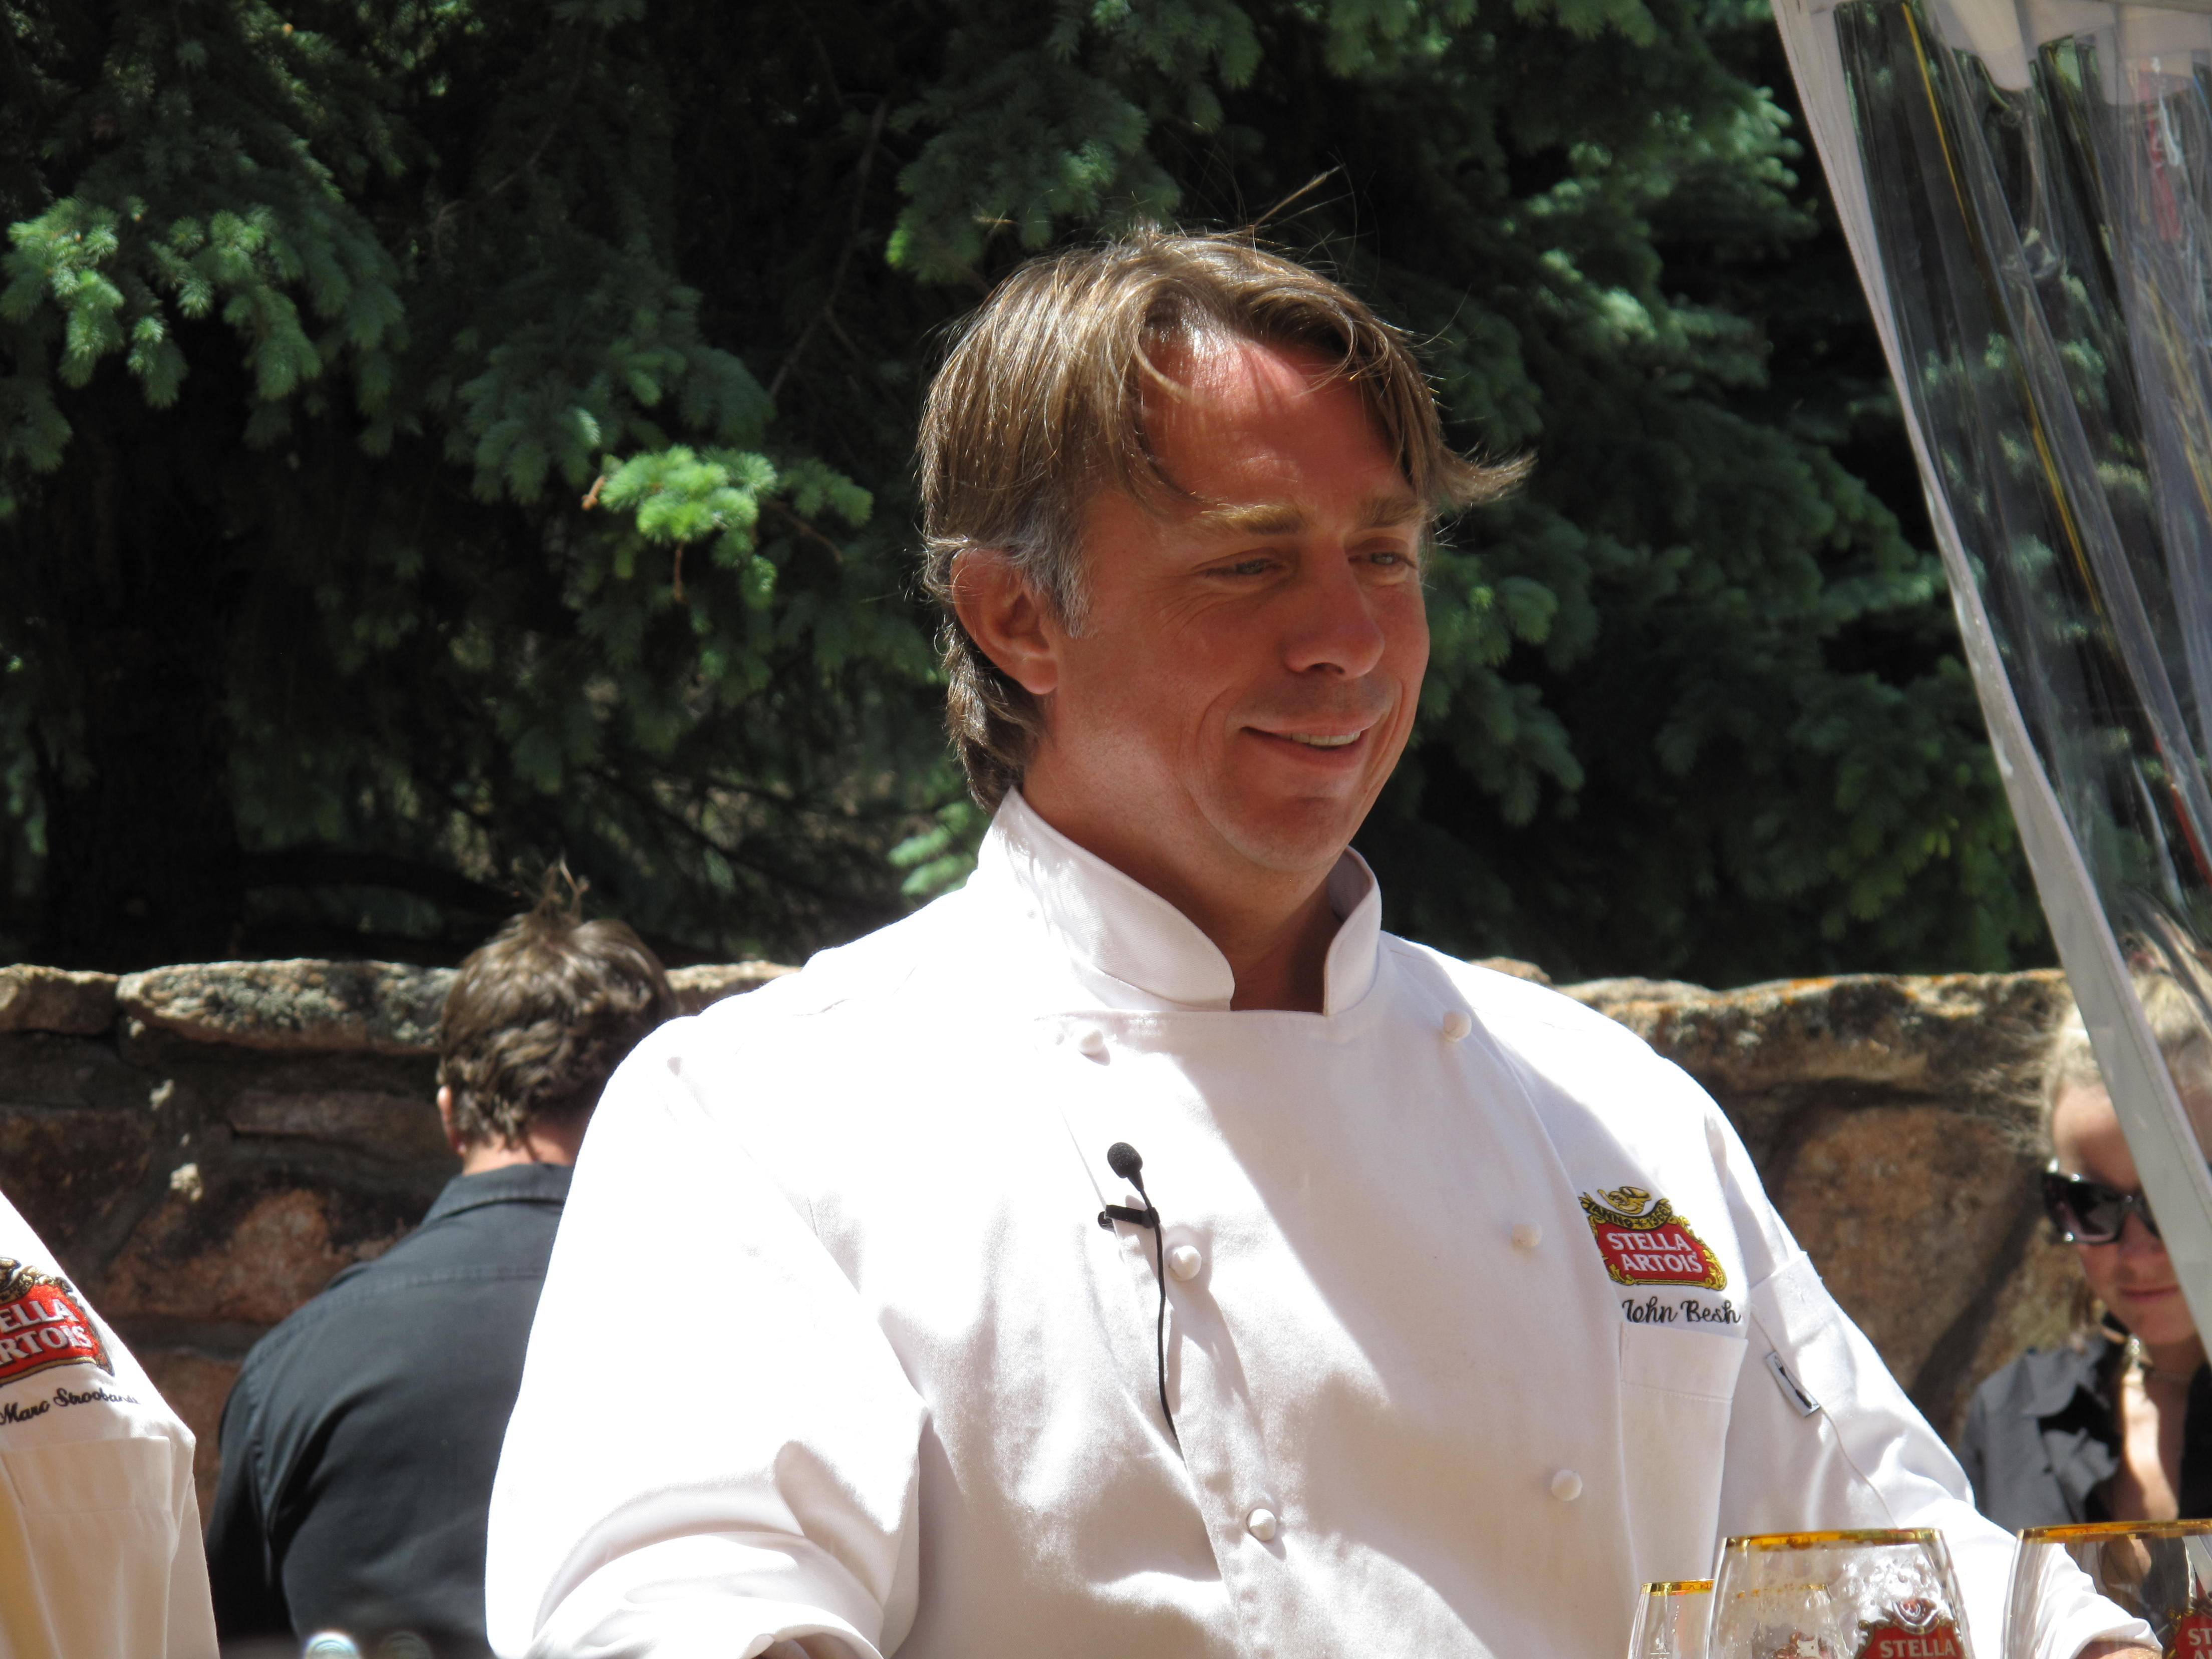 Chef John Besh and his crew drove the crawfish to Aspen from Louisiana. He was promoting his new television show, Inedible to Incredible, which debuted earlier this week.